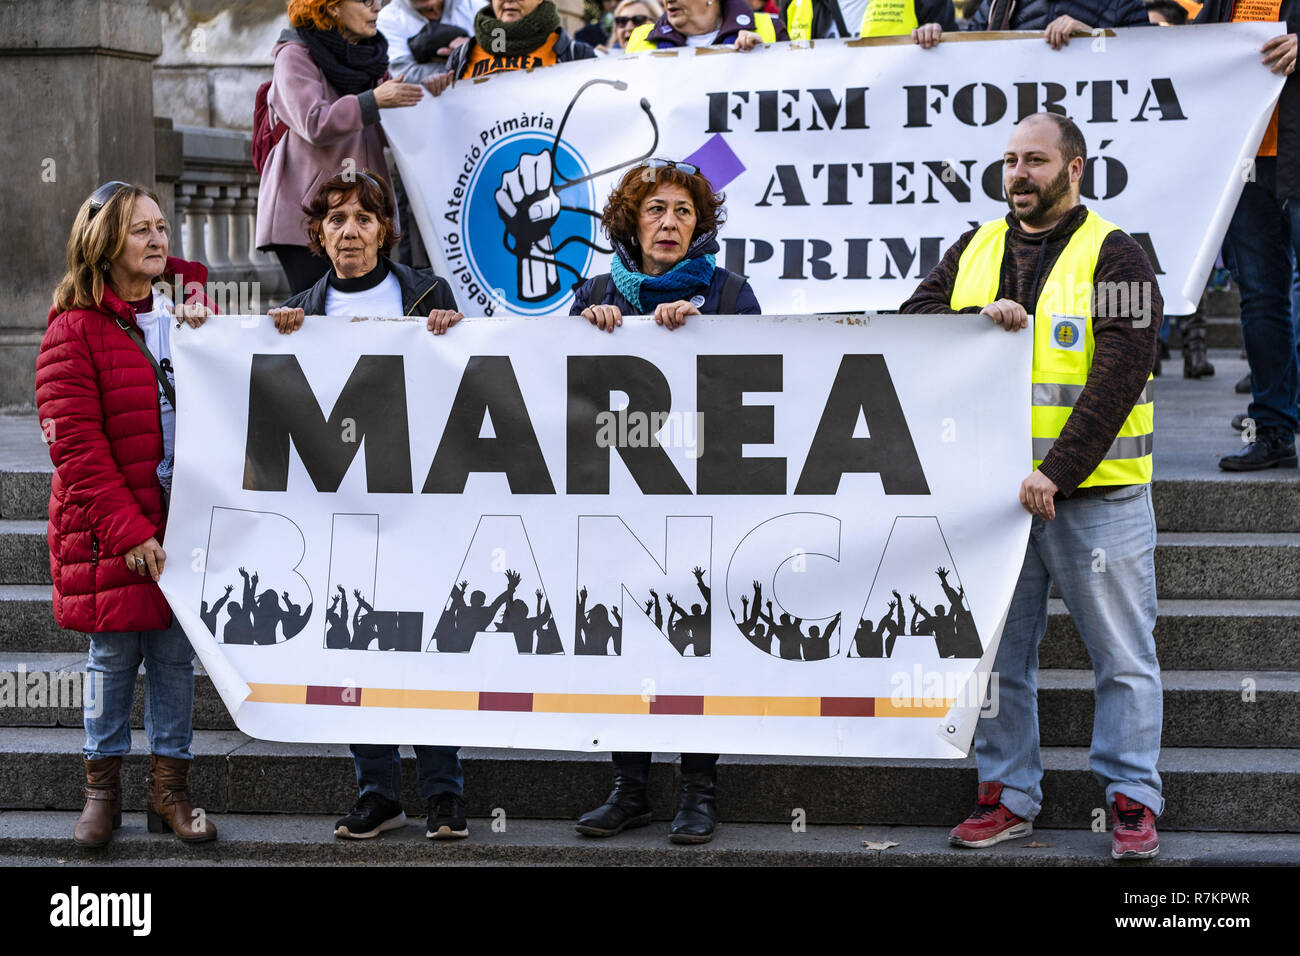 Barcelona, Catalonia, Spain. 10th December, 2018. Protesters are seen holding a Marea Blanca banner during the protest.Called by Marea Blanca Catalunya within the state fight against the waiting lists and the commercialization of health, the protesters have toured the center of Barcelona to finish in front of the Generalitat of Catalonia. Credit: Paco Freire/SOPA Images/ZUMA Wire/Alamy Live News - Stock Image